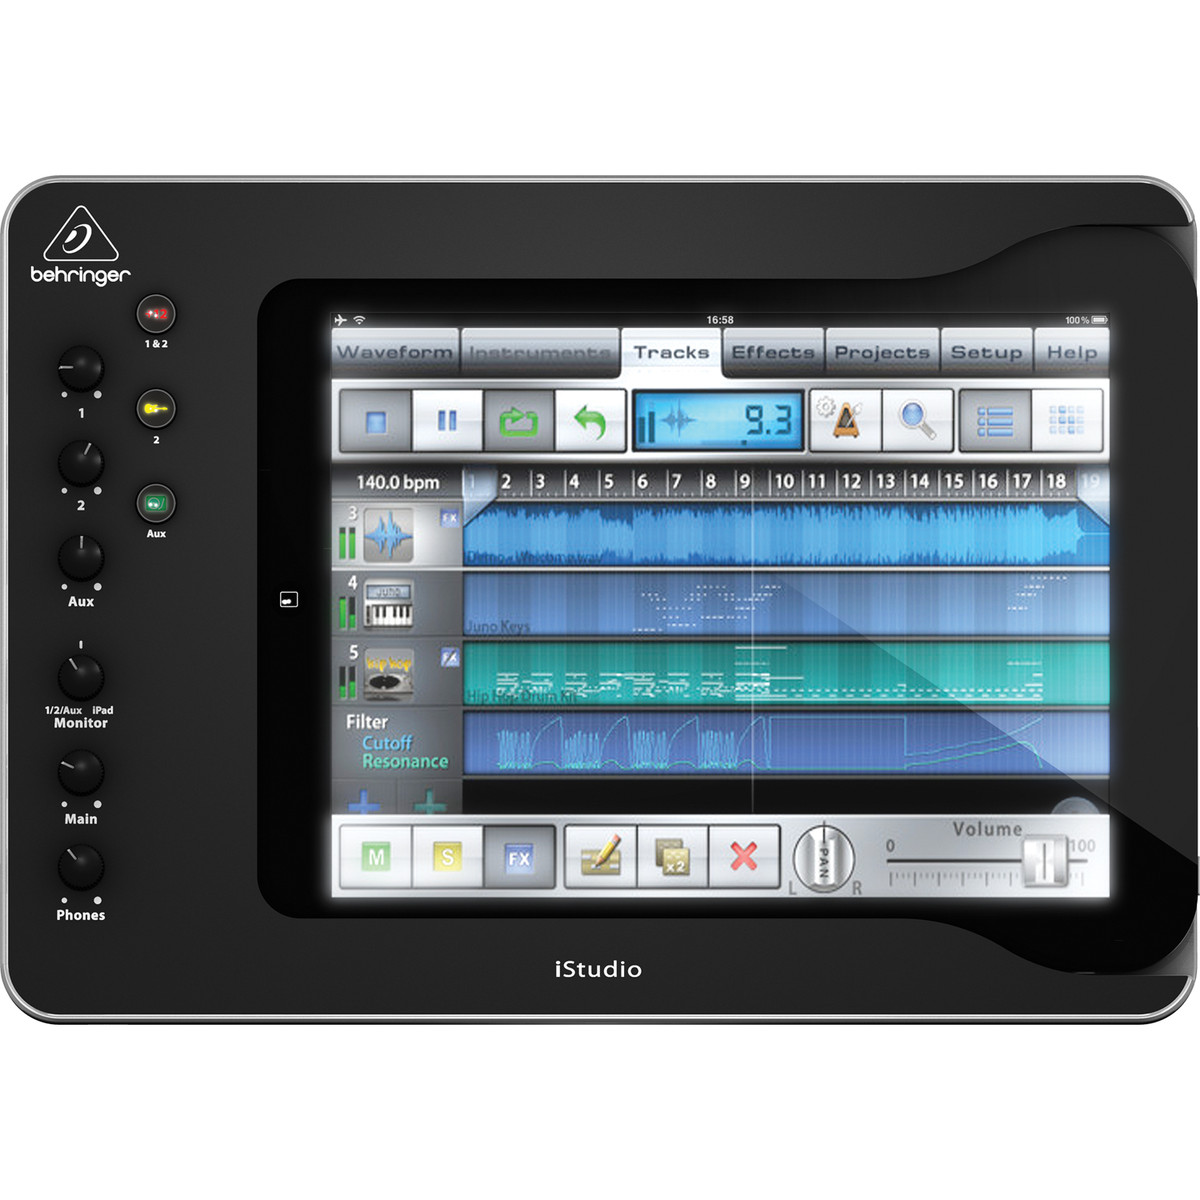 Image of Behringer iStudio iS202 iPad Mixer Dock